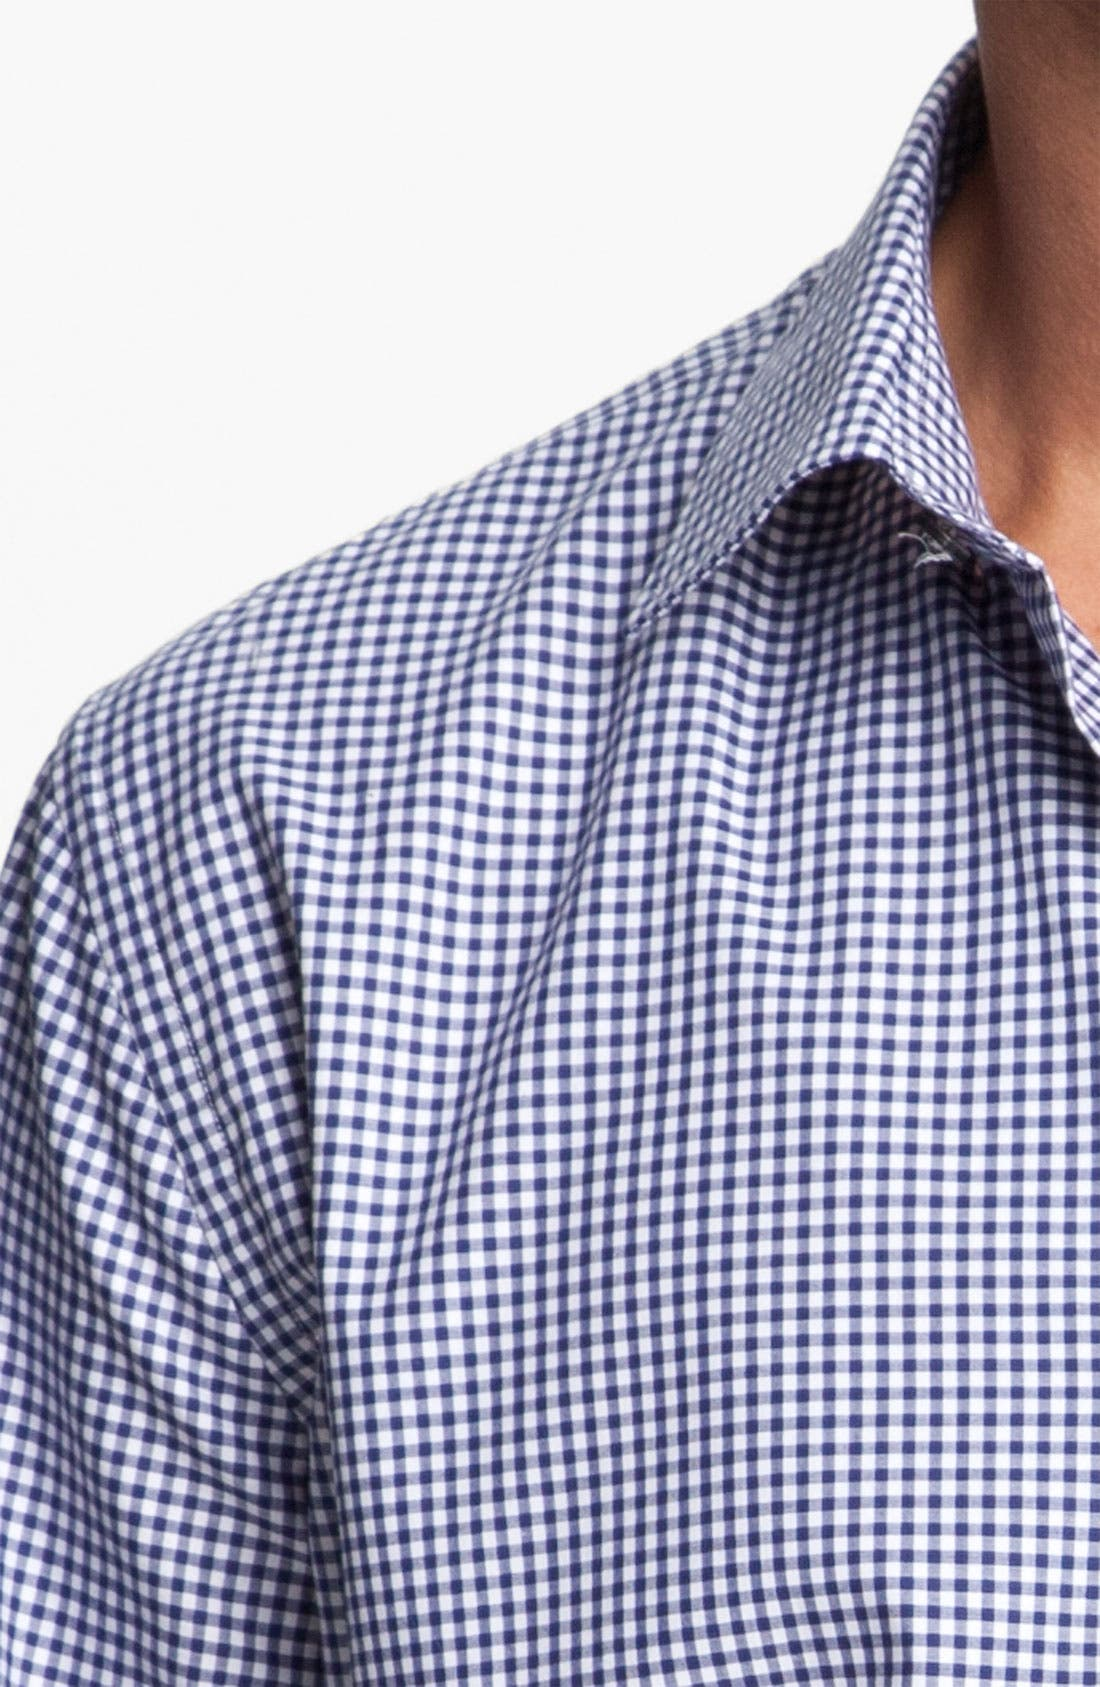 Alternate Image 3  - Paul Smith London Gingham Dress Shirt